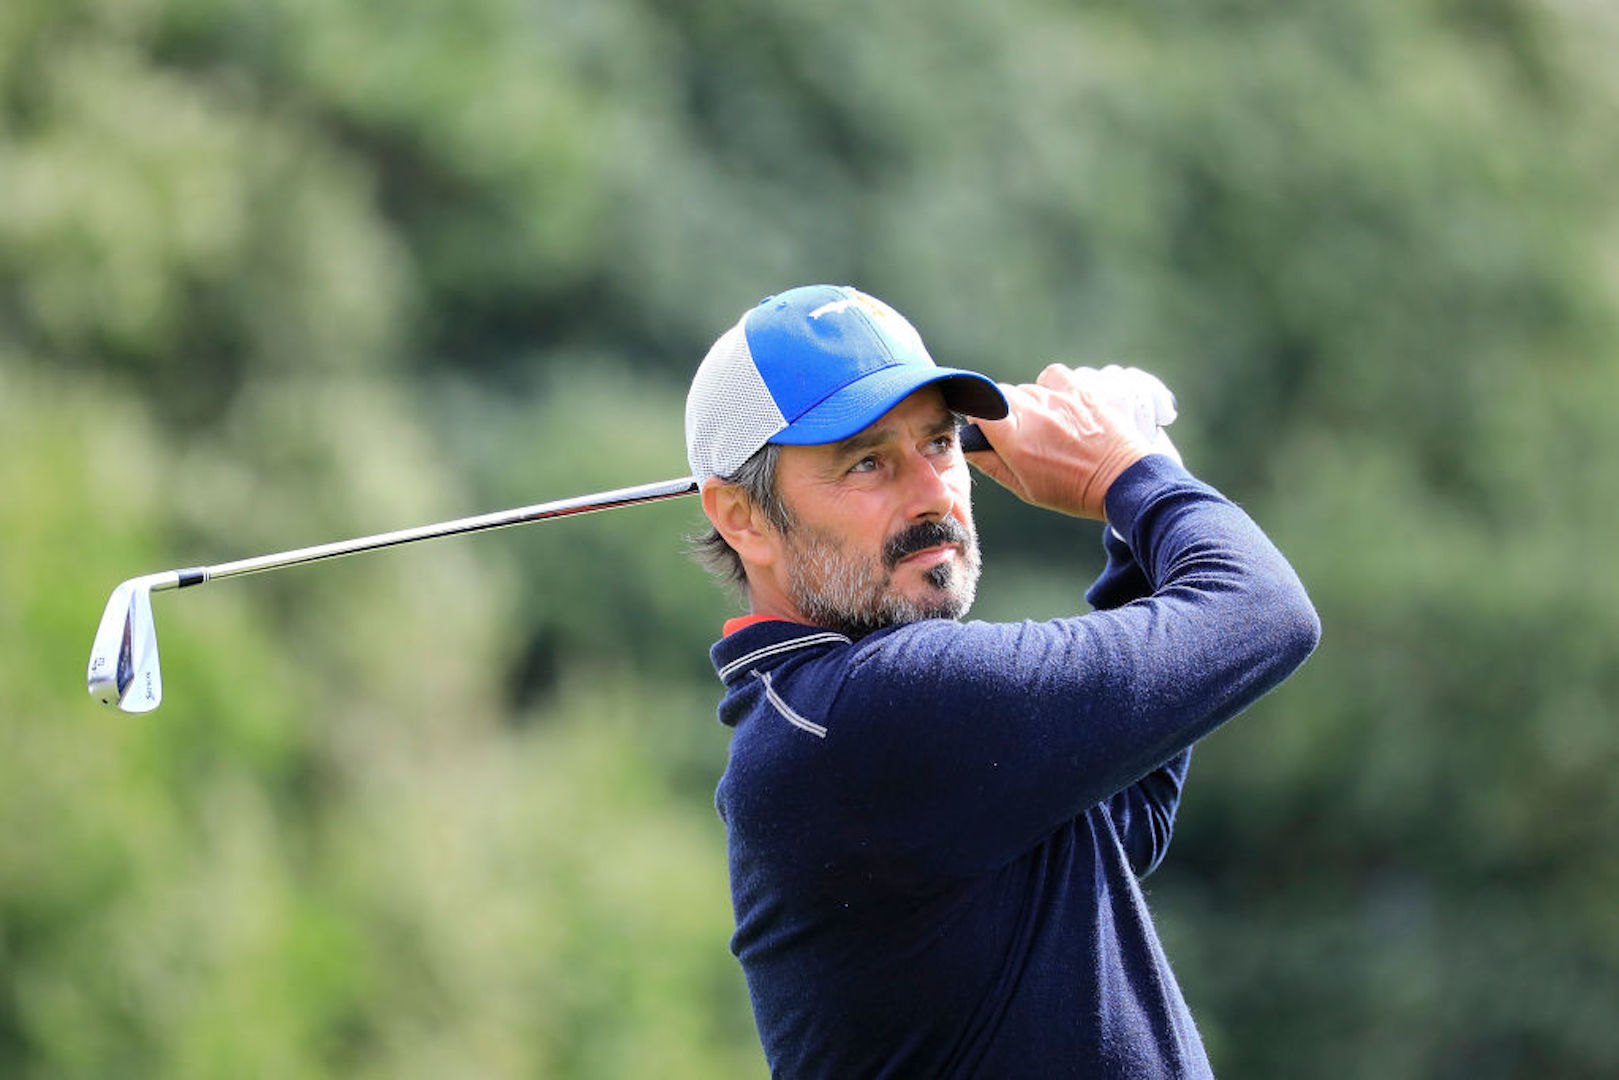 French golfing icon Jean van de Velde to play